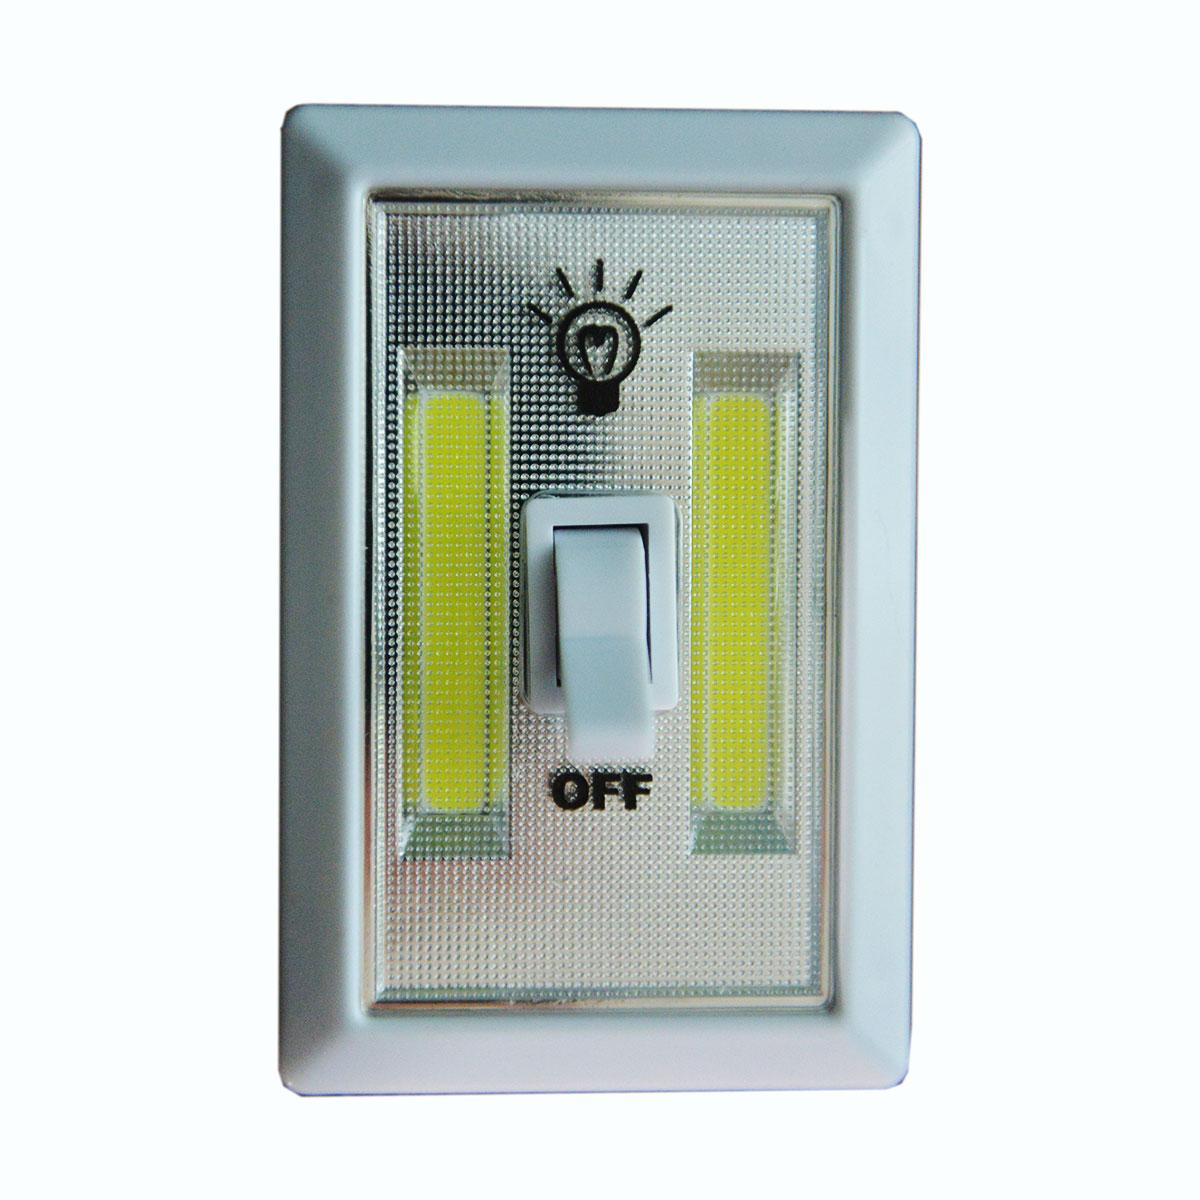 Delightful 2018 Cob Led Switch Light Wireless Cordless Under Cabinet Closet Kitchen Rv  Night Light From Tass, $1.41 | Dhgate.Com